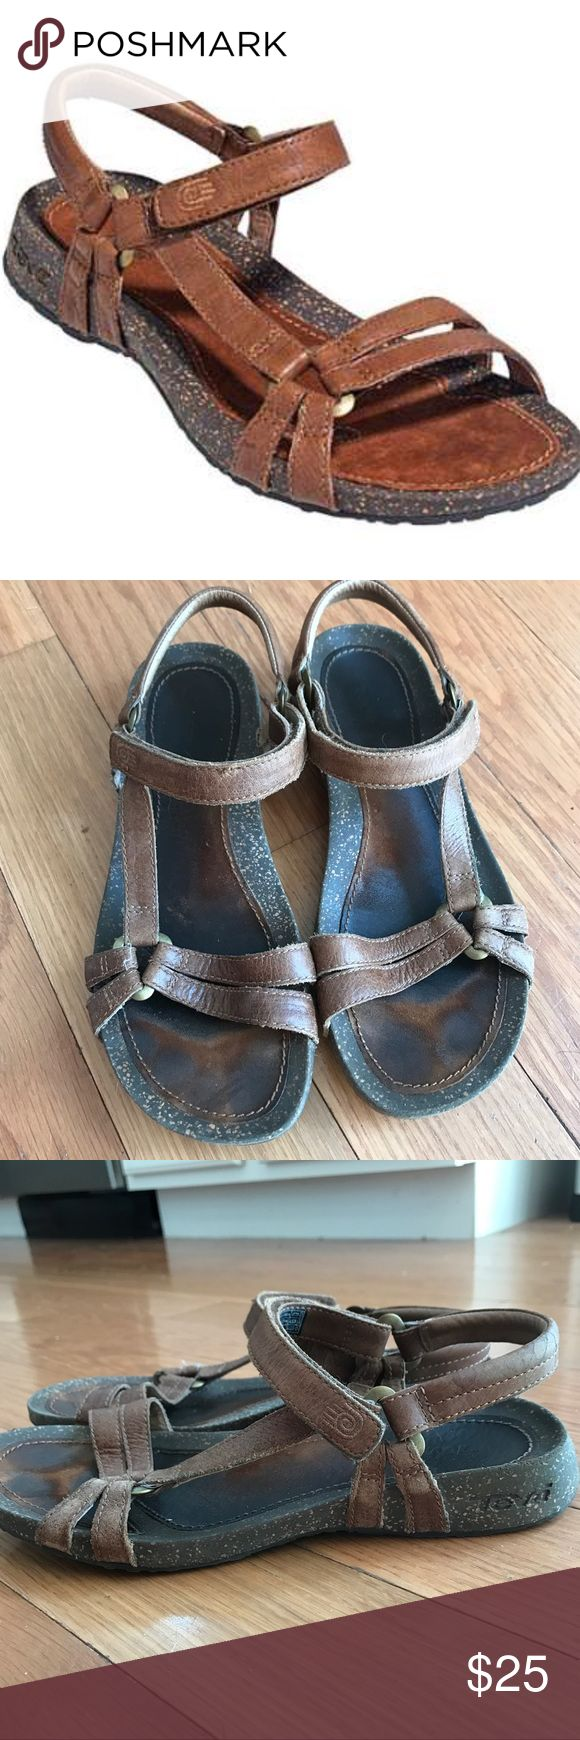 Ladies Leather Teva Sandals Ladies genuine leather Teva sandals size 8. Super comfortable but my post pregnancy feet don't fit in them now. These are well loved with lots of miles left. Originally purchased from Nordstrom. Offers considered. Teva Shoes Sandals